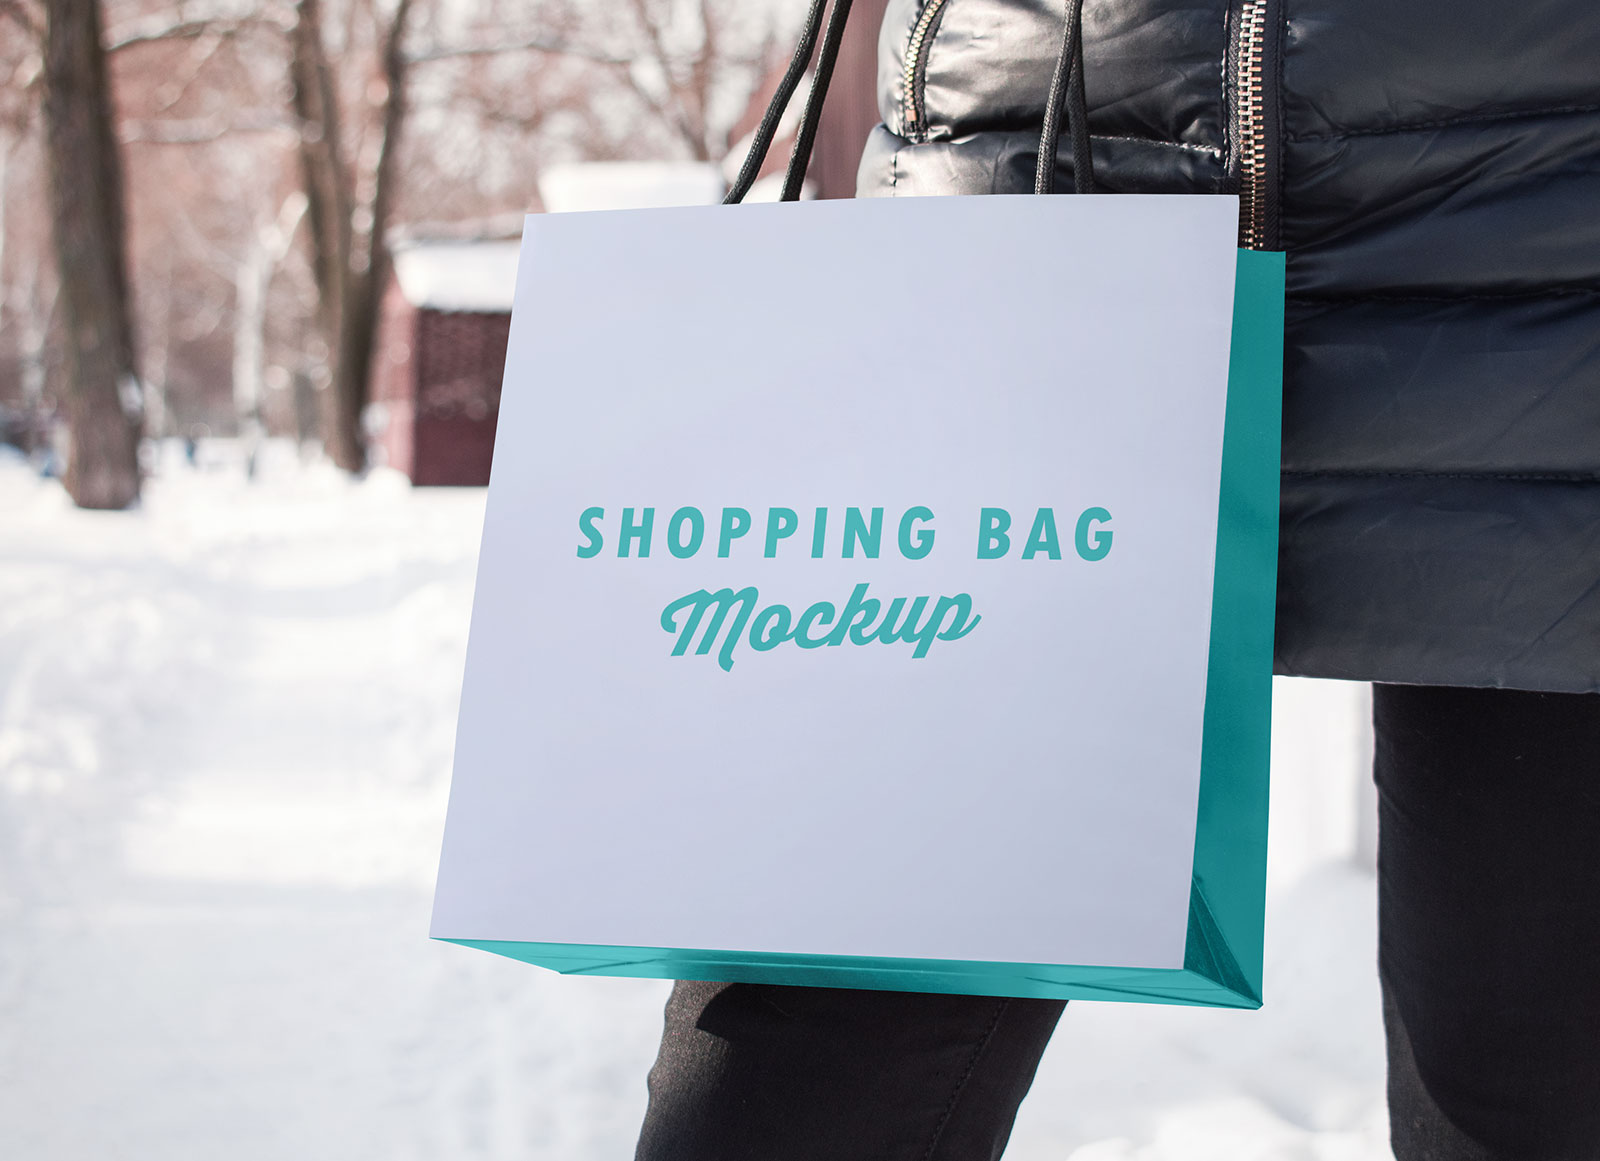 Free-Paper-Shopping-Bag-Photo-Mockup-PSD